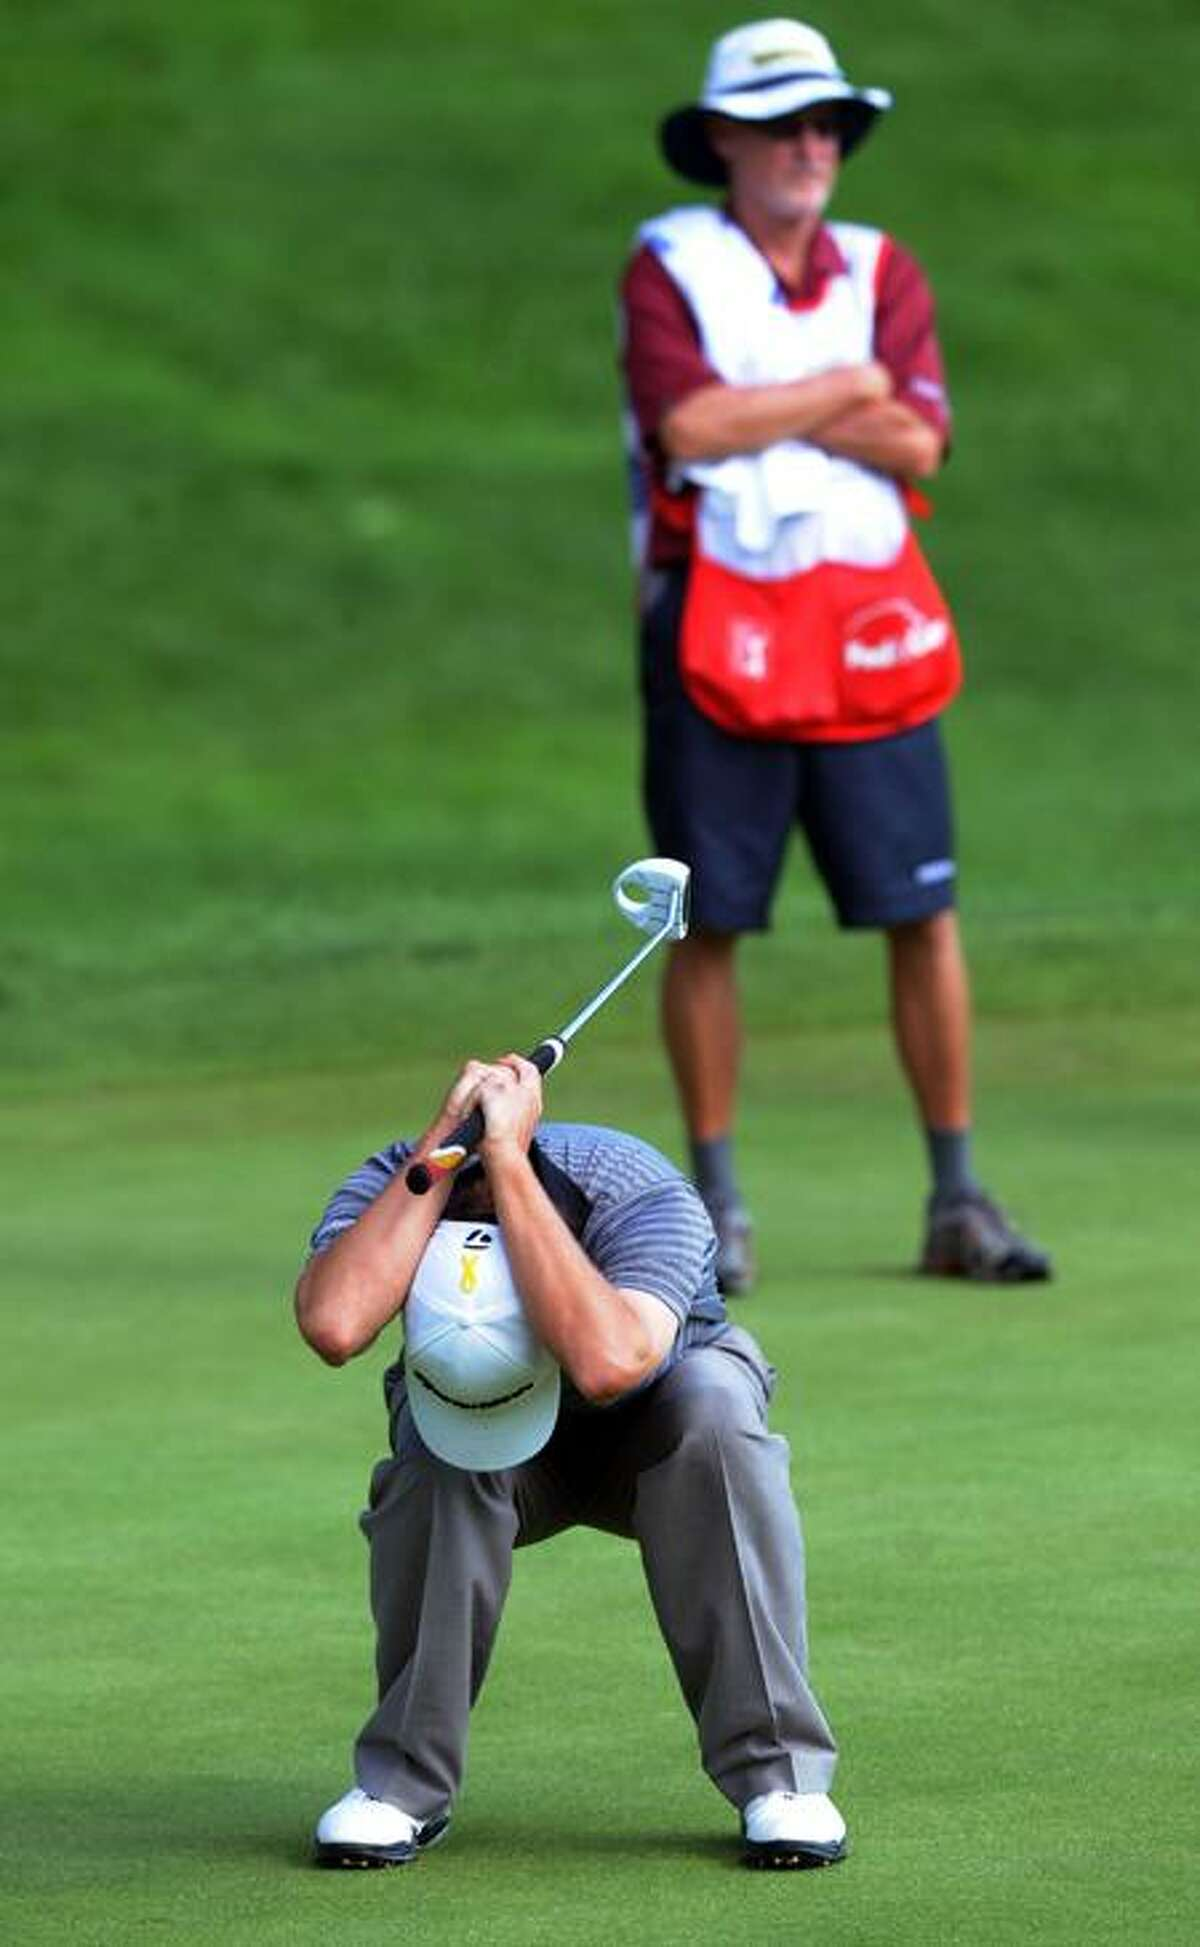 Spencer Levin reacts to missing a birdie putt on the 18th green at the Travelers Championship on Saturday. (Melanie Stengel/Register)